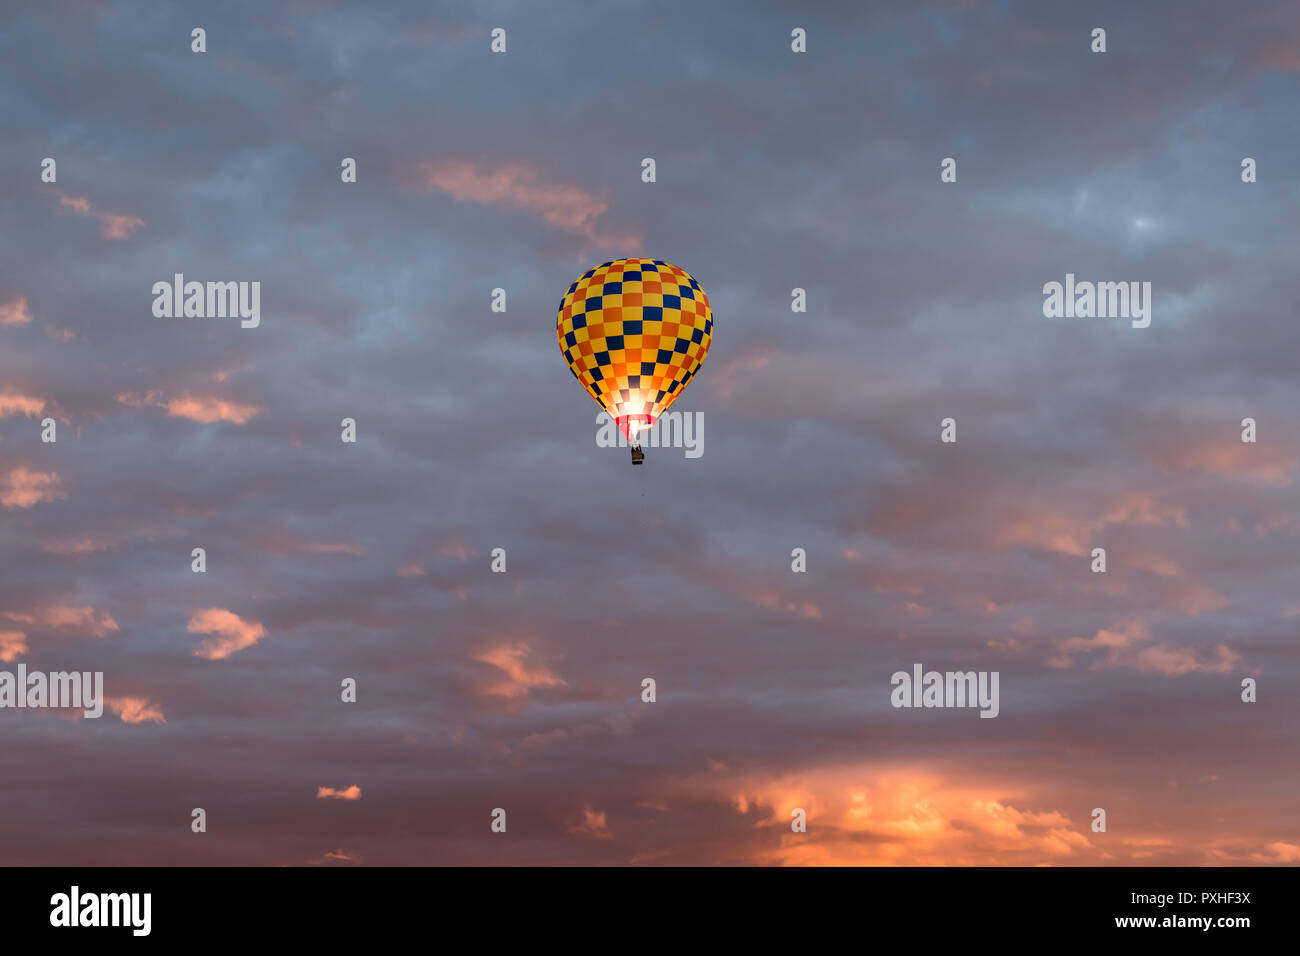 Colorful hot air balloon in yellow, orange, and dark blue colors glowing against a dramatic colorful sky and clouds at sunrise Stock Photo